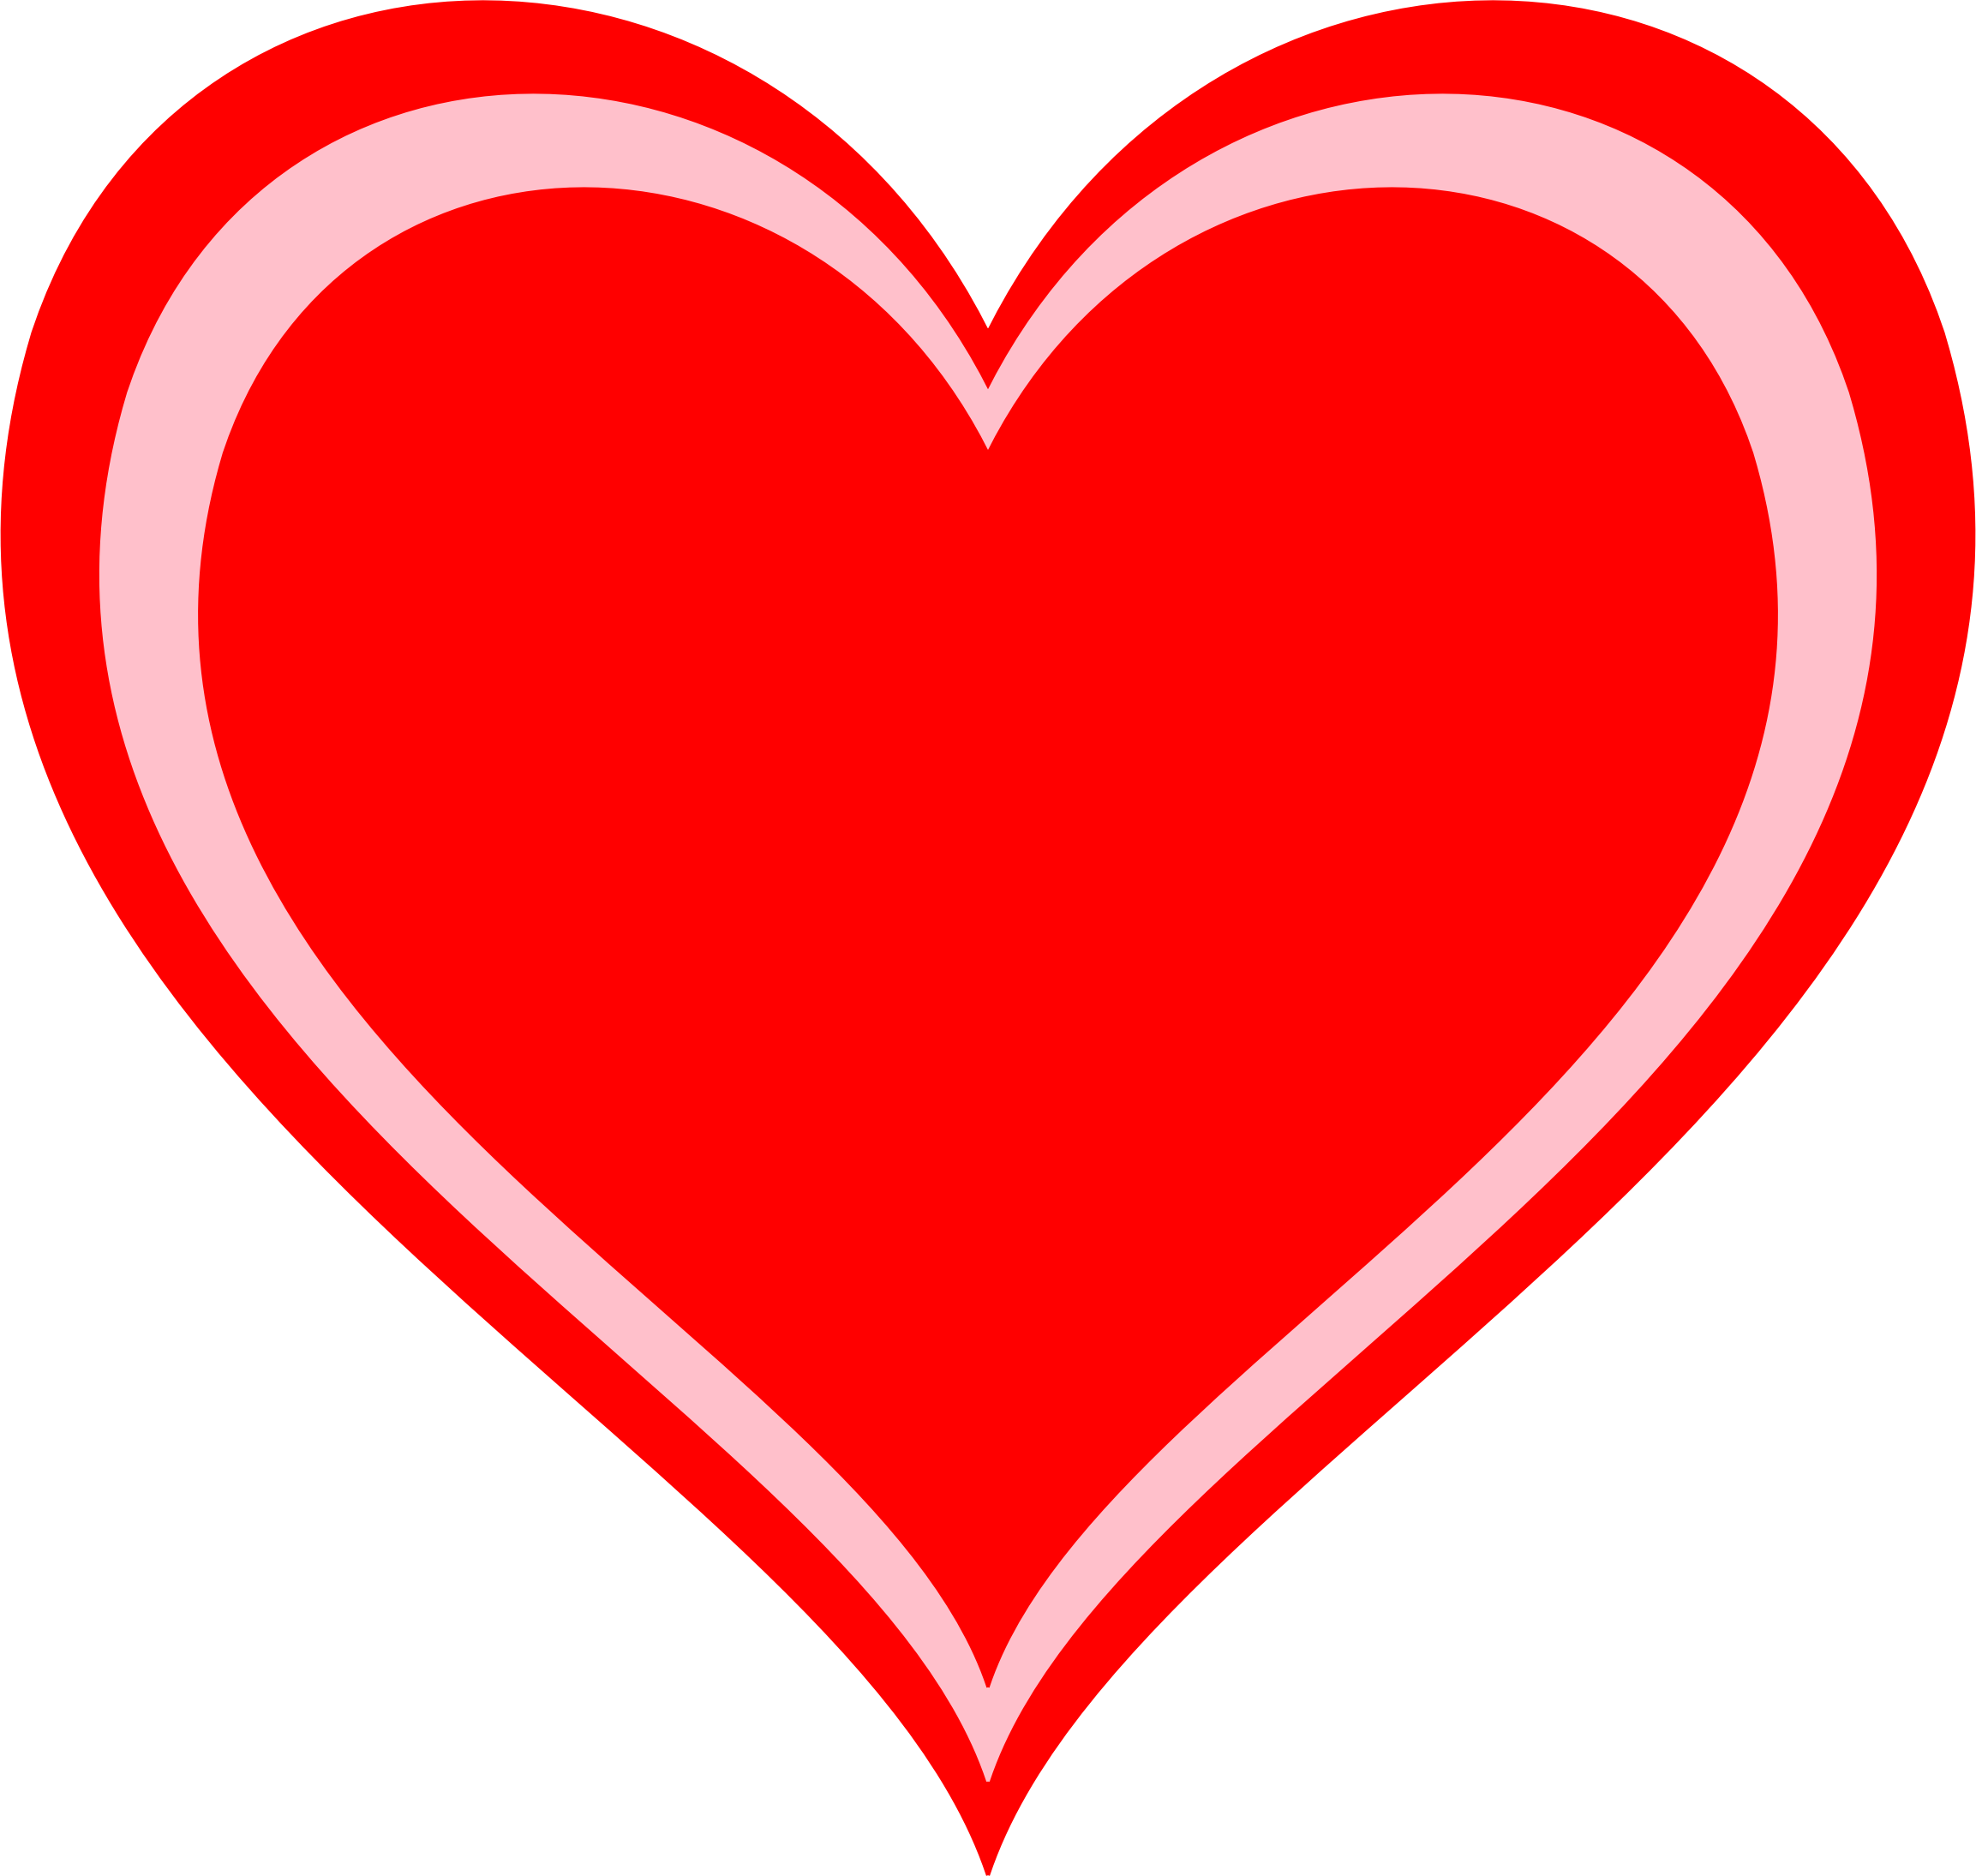 Big Heart Clipart Big Heart Drawing Clipart Best Big